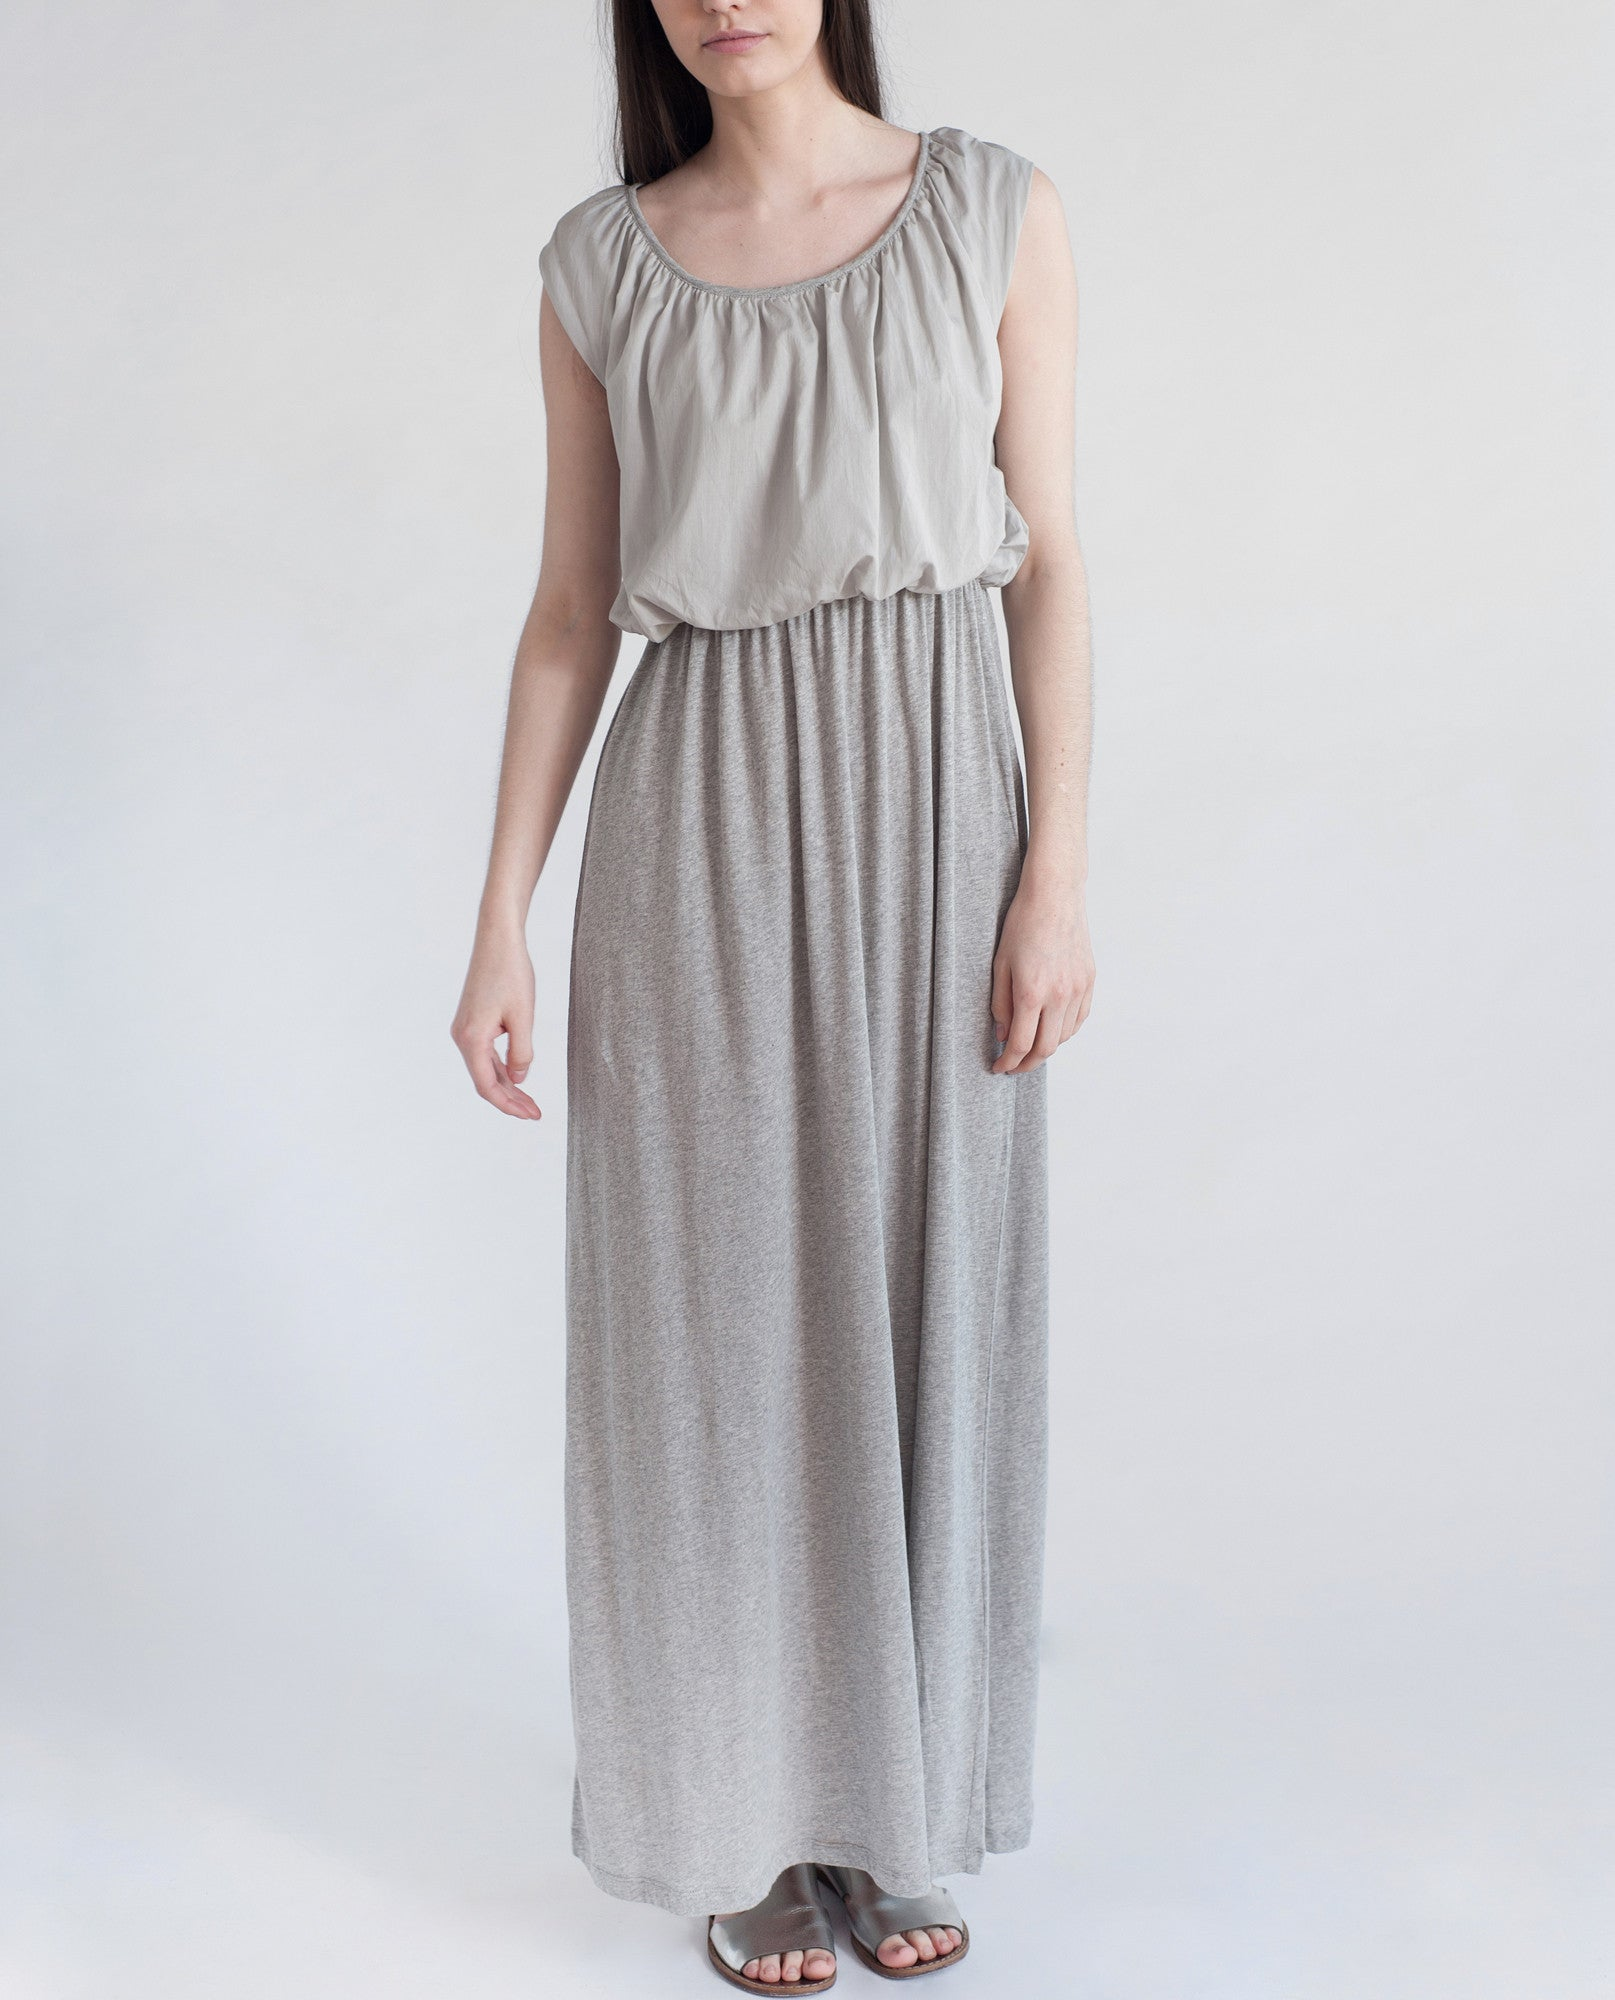 LABURNUM Organic Cotton Maxi Dress In Light Grey from Beaumont Organic